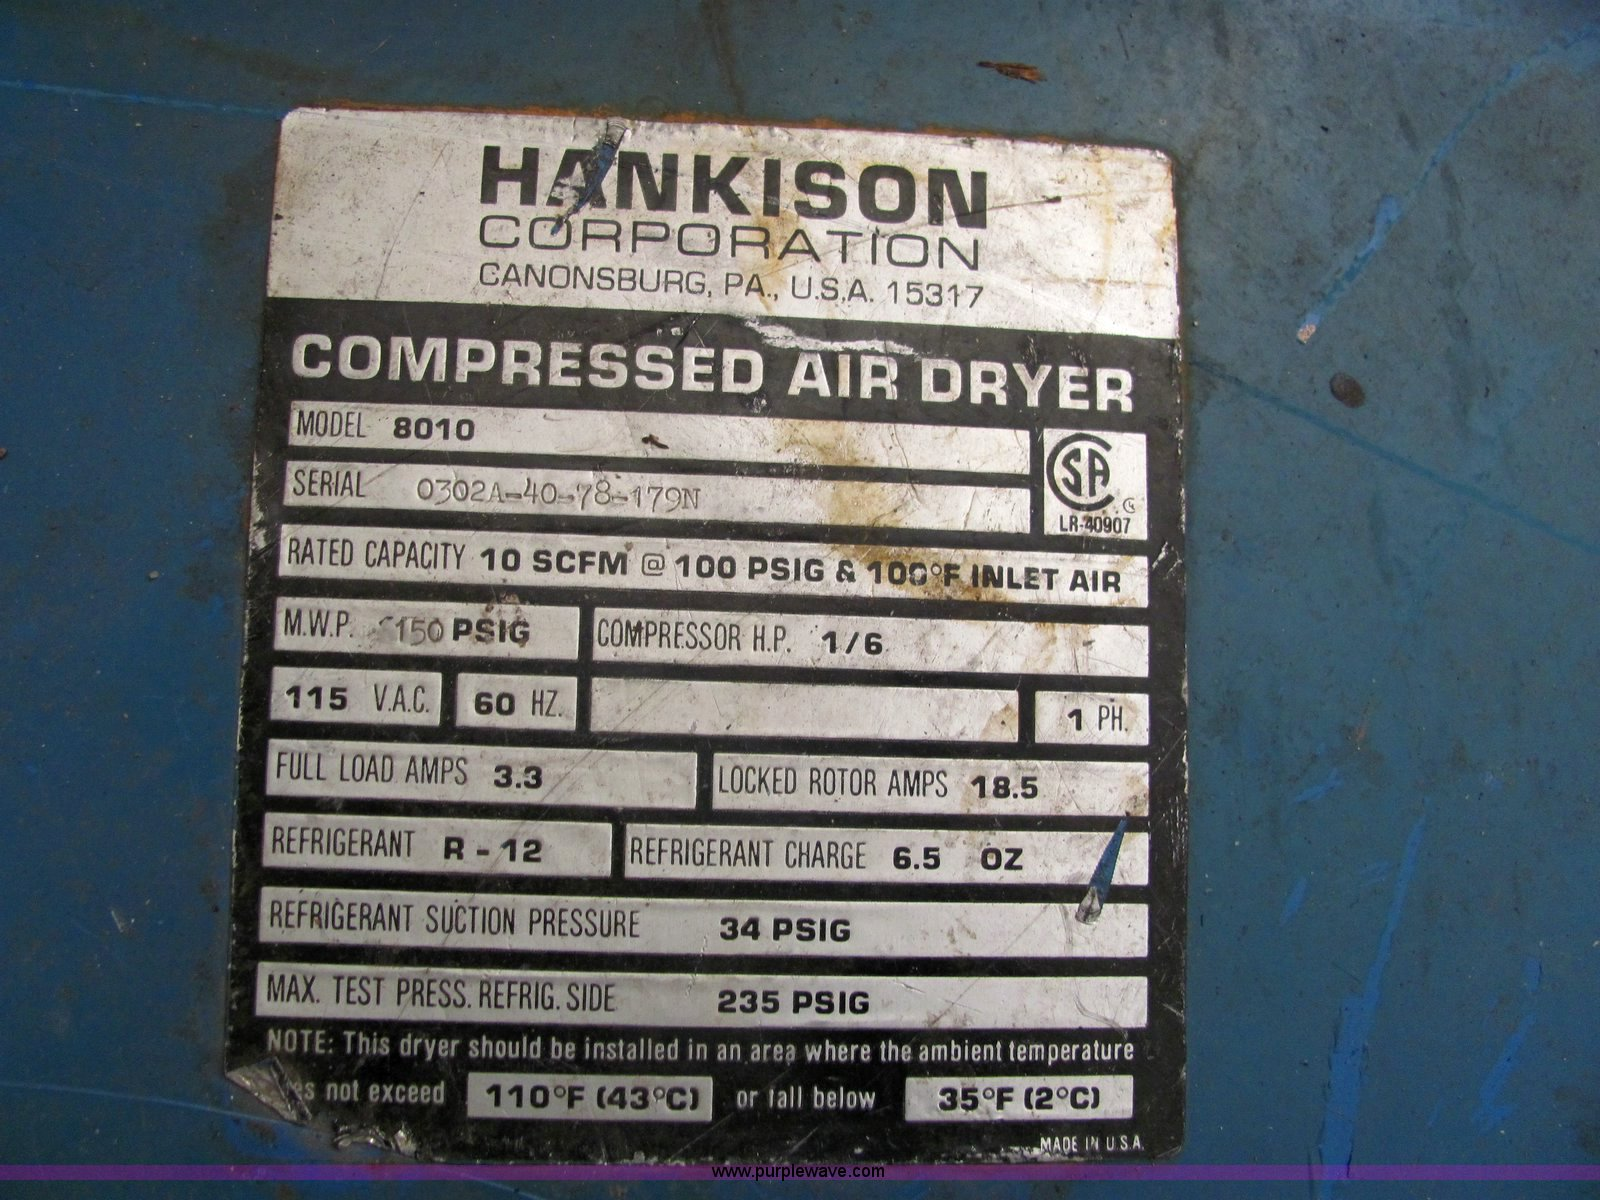 ... Hankison 8010 compressed air dryer Full size in new window